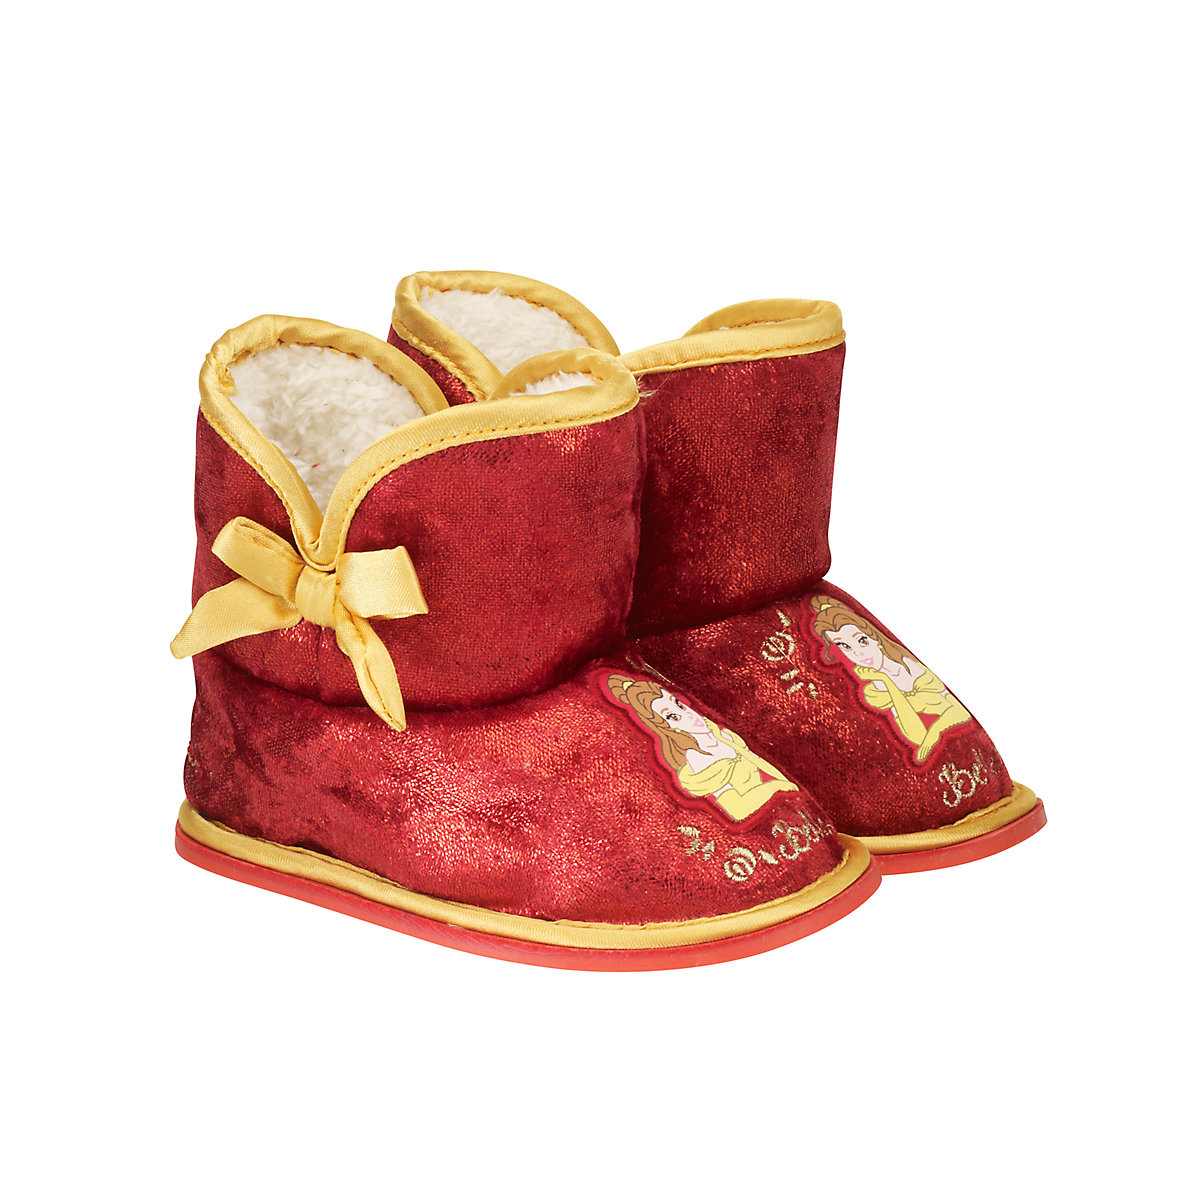 Disney Princess Belle Bootees